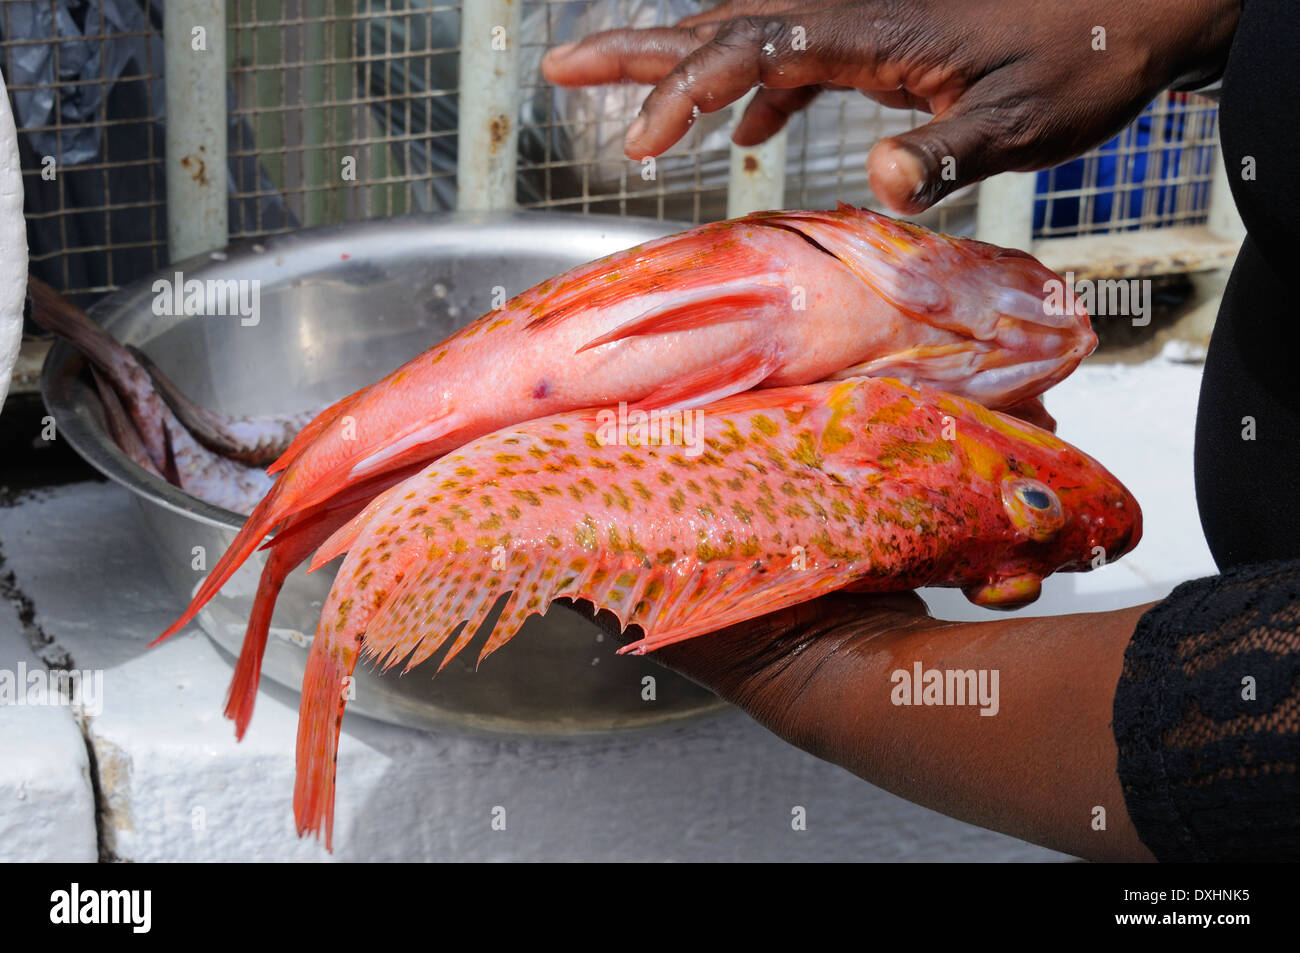 Coloured Fish Stock Photos & Coloured Fish Stock Images - Alamy